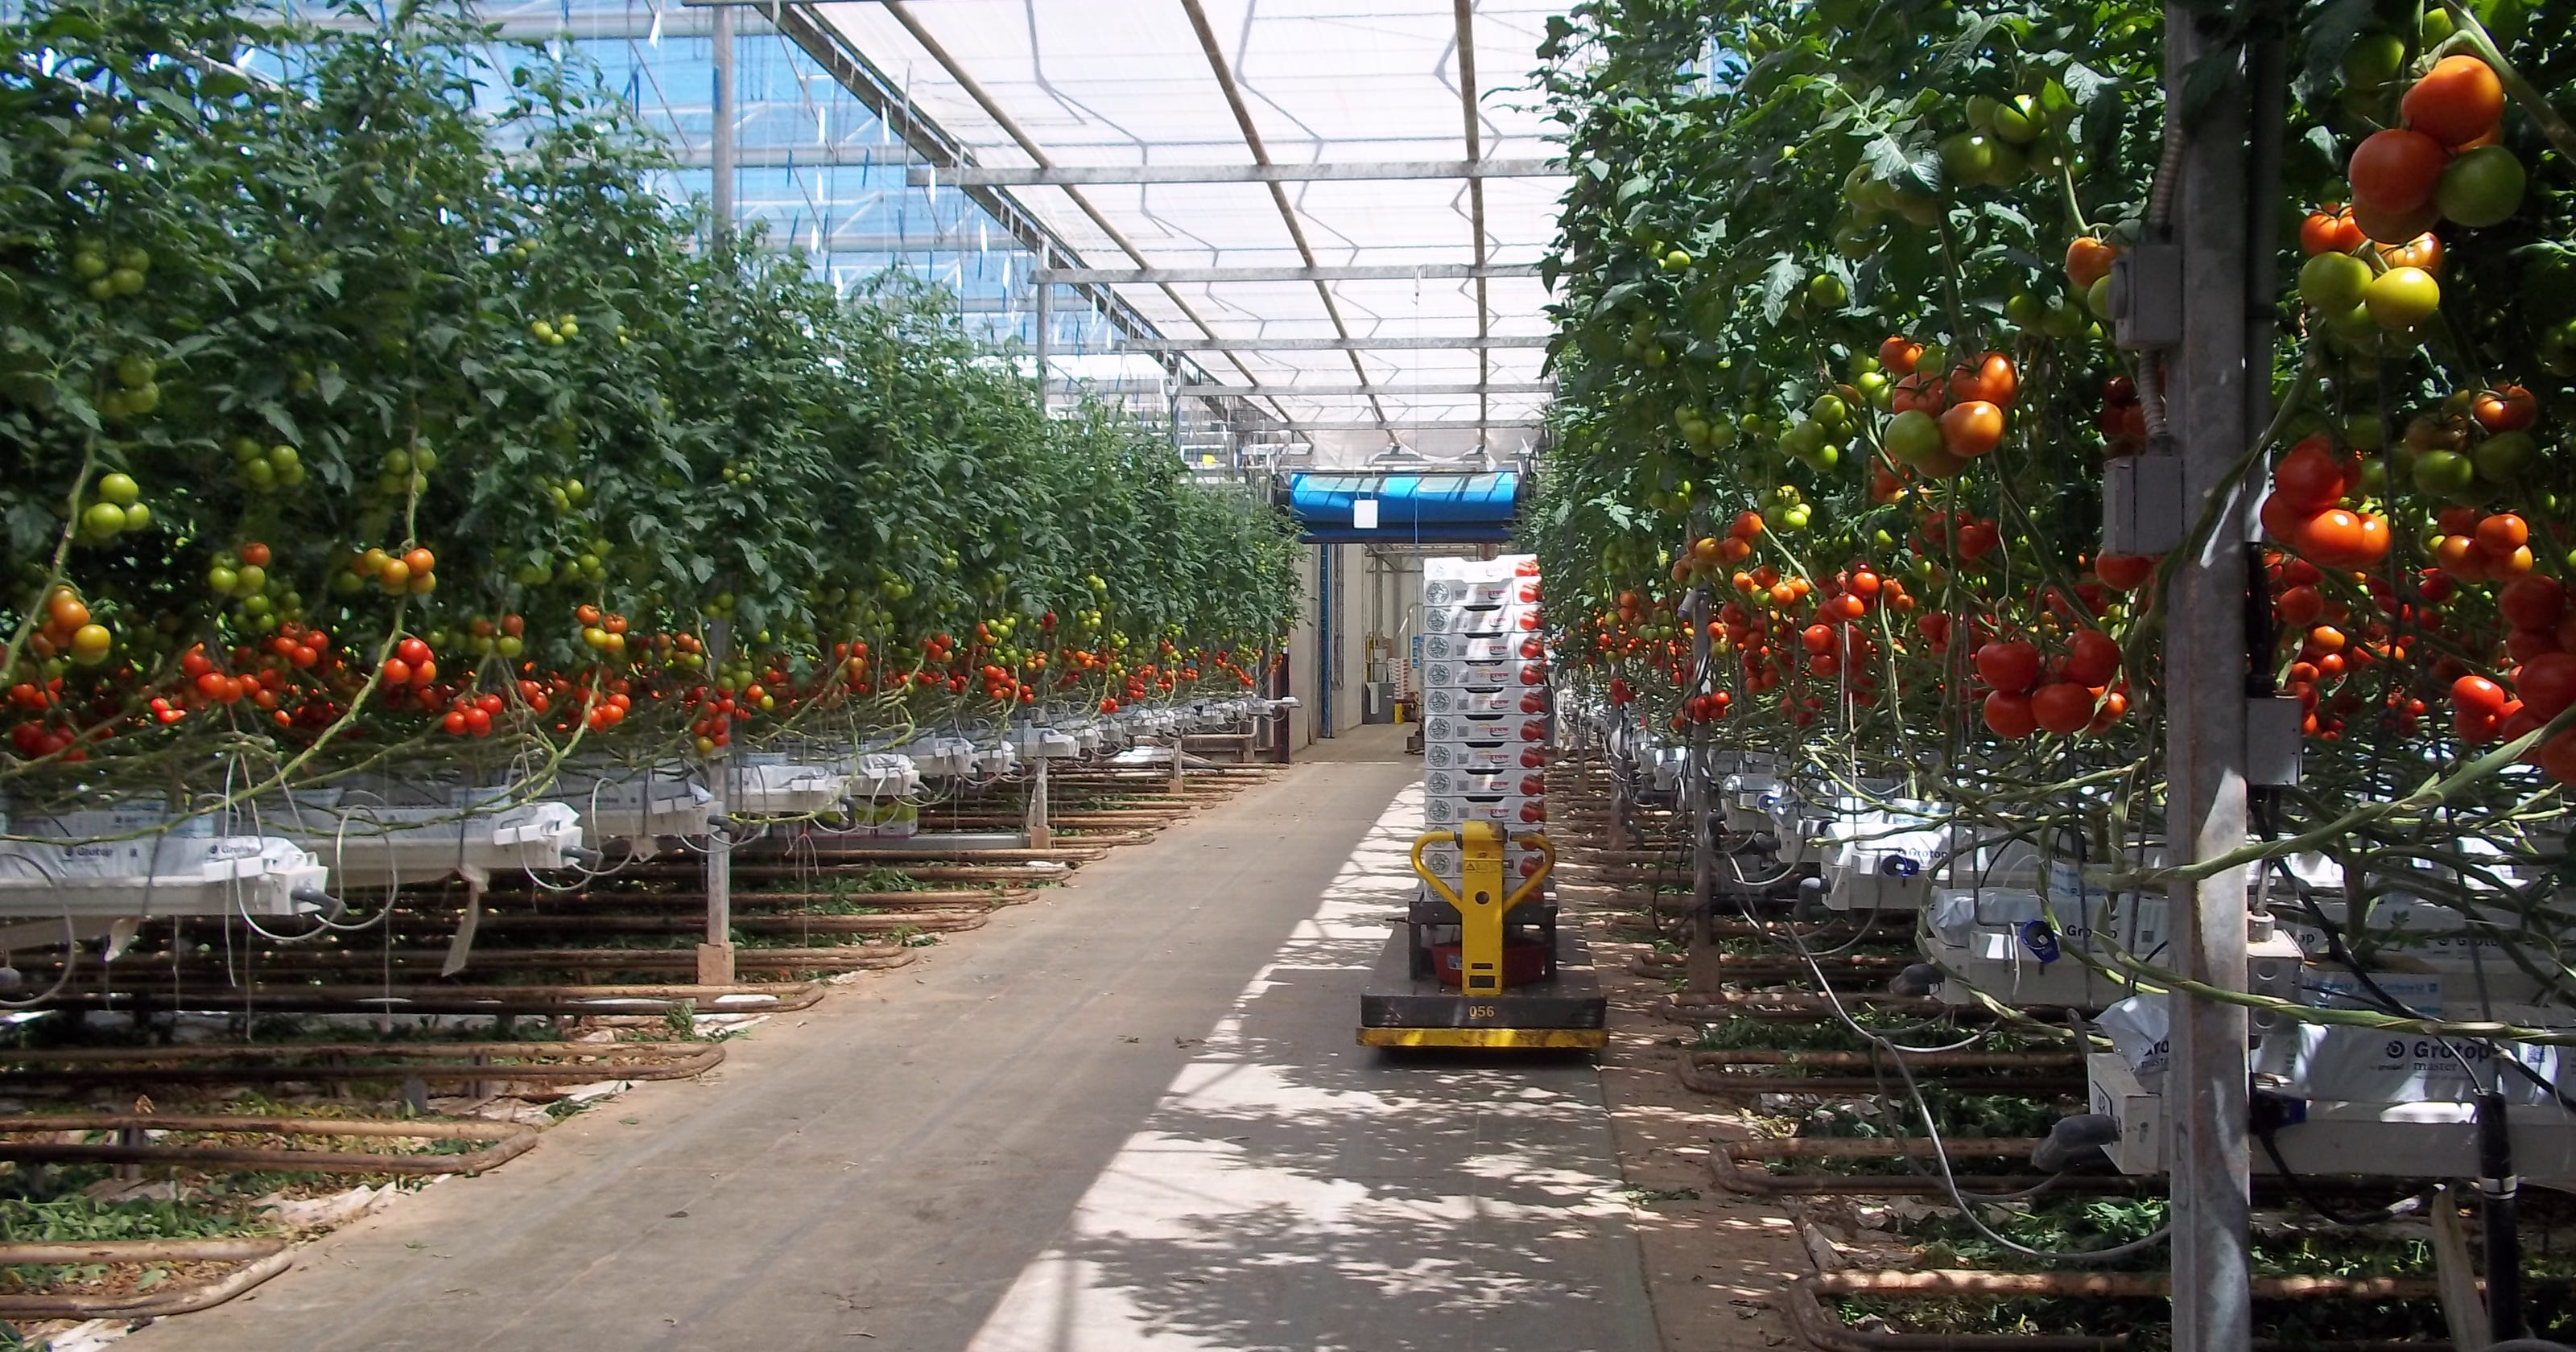 Town board takes next step on tomato project